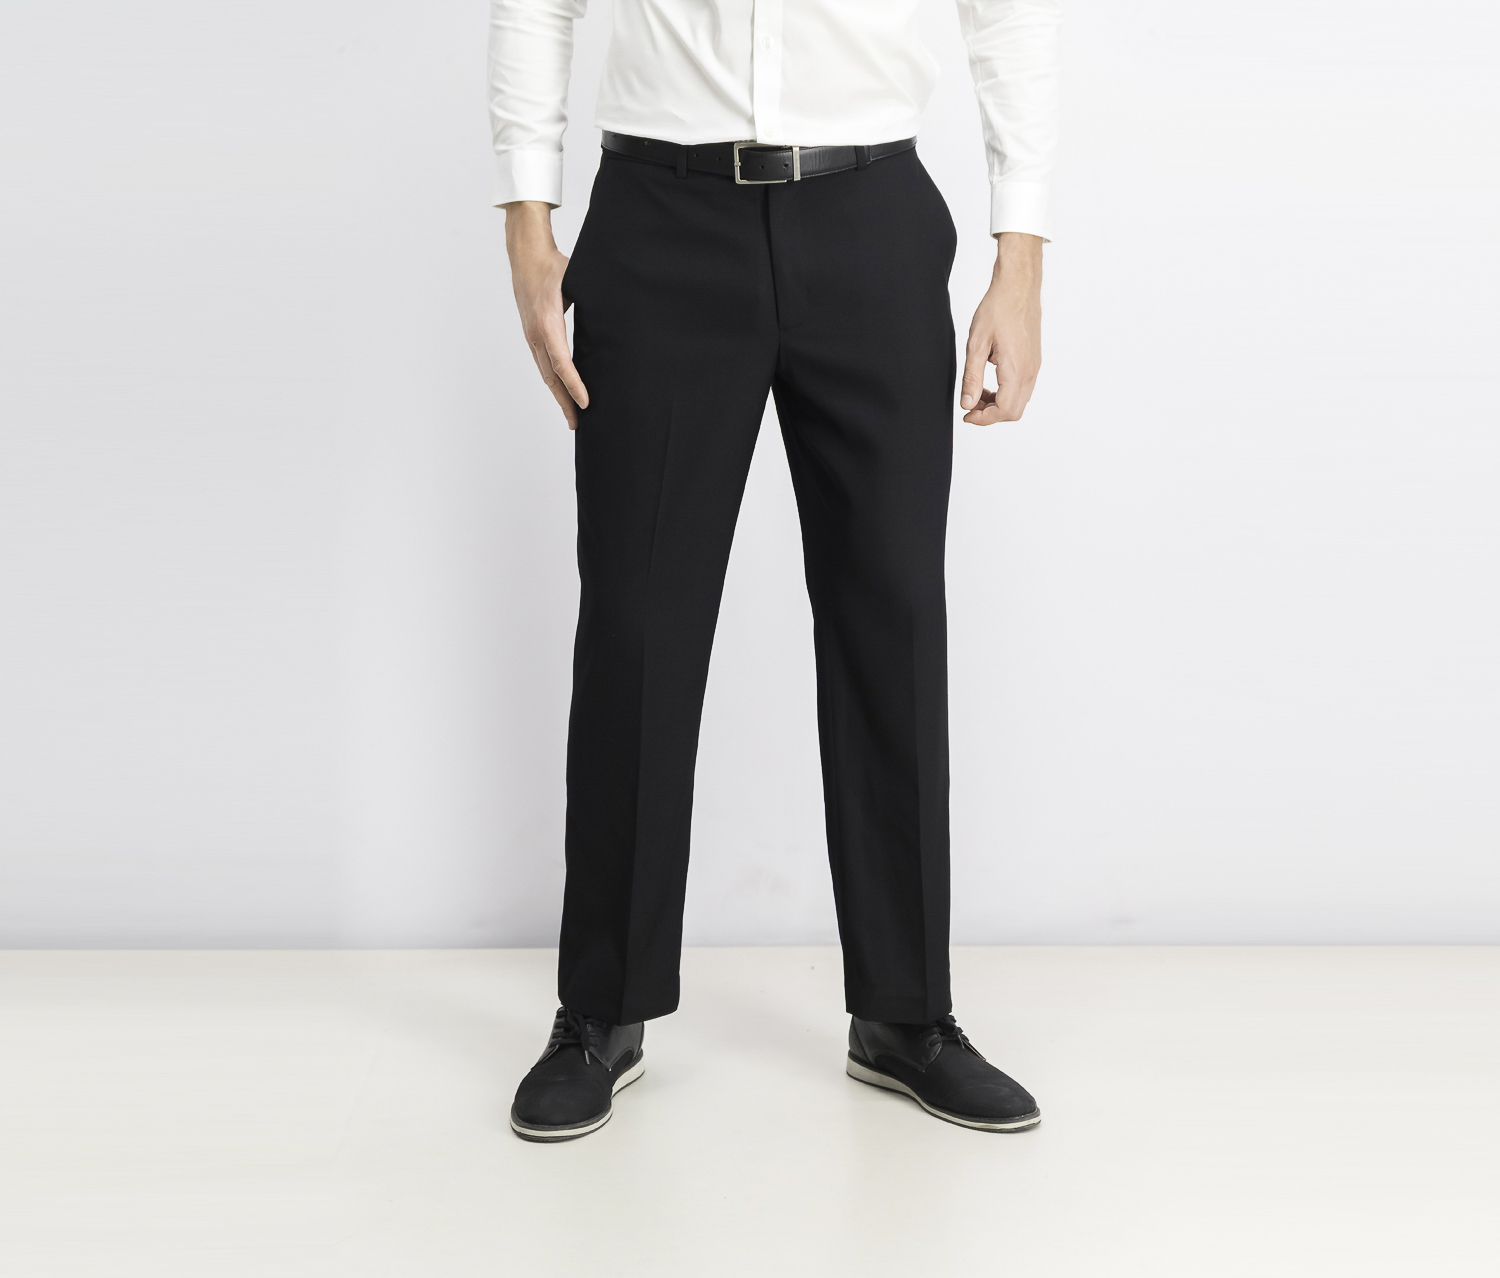 Flat Front Classic Fit Dress Pants, Black Ice